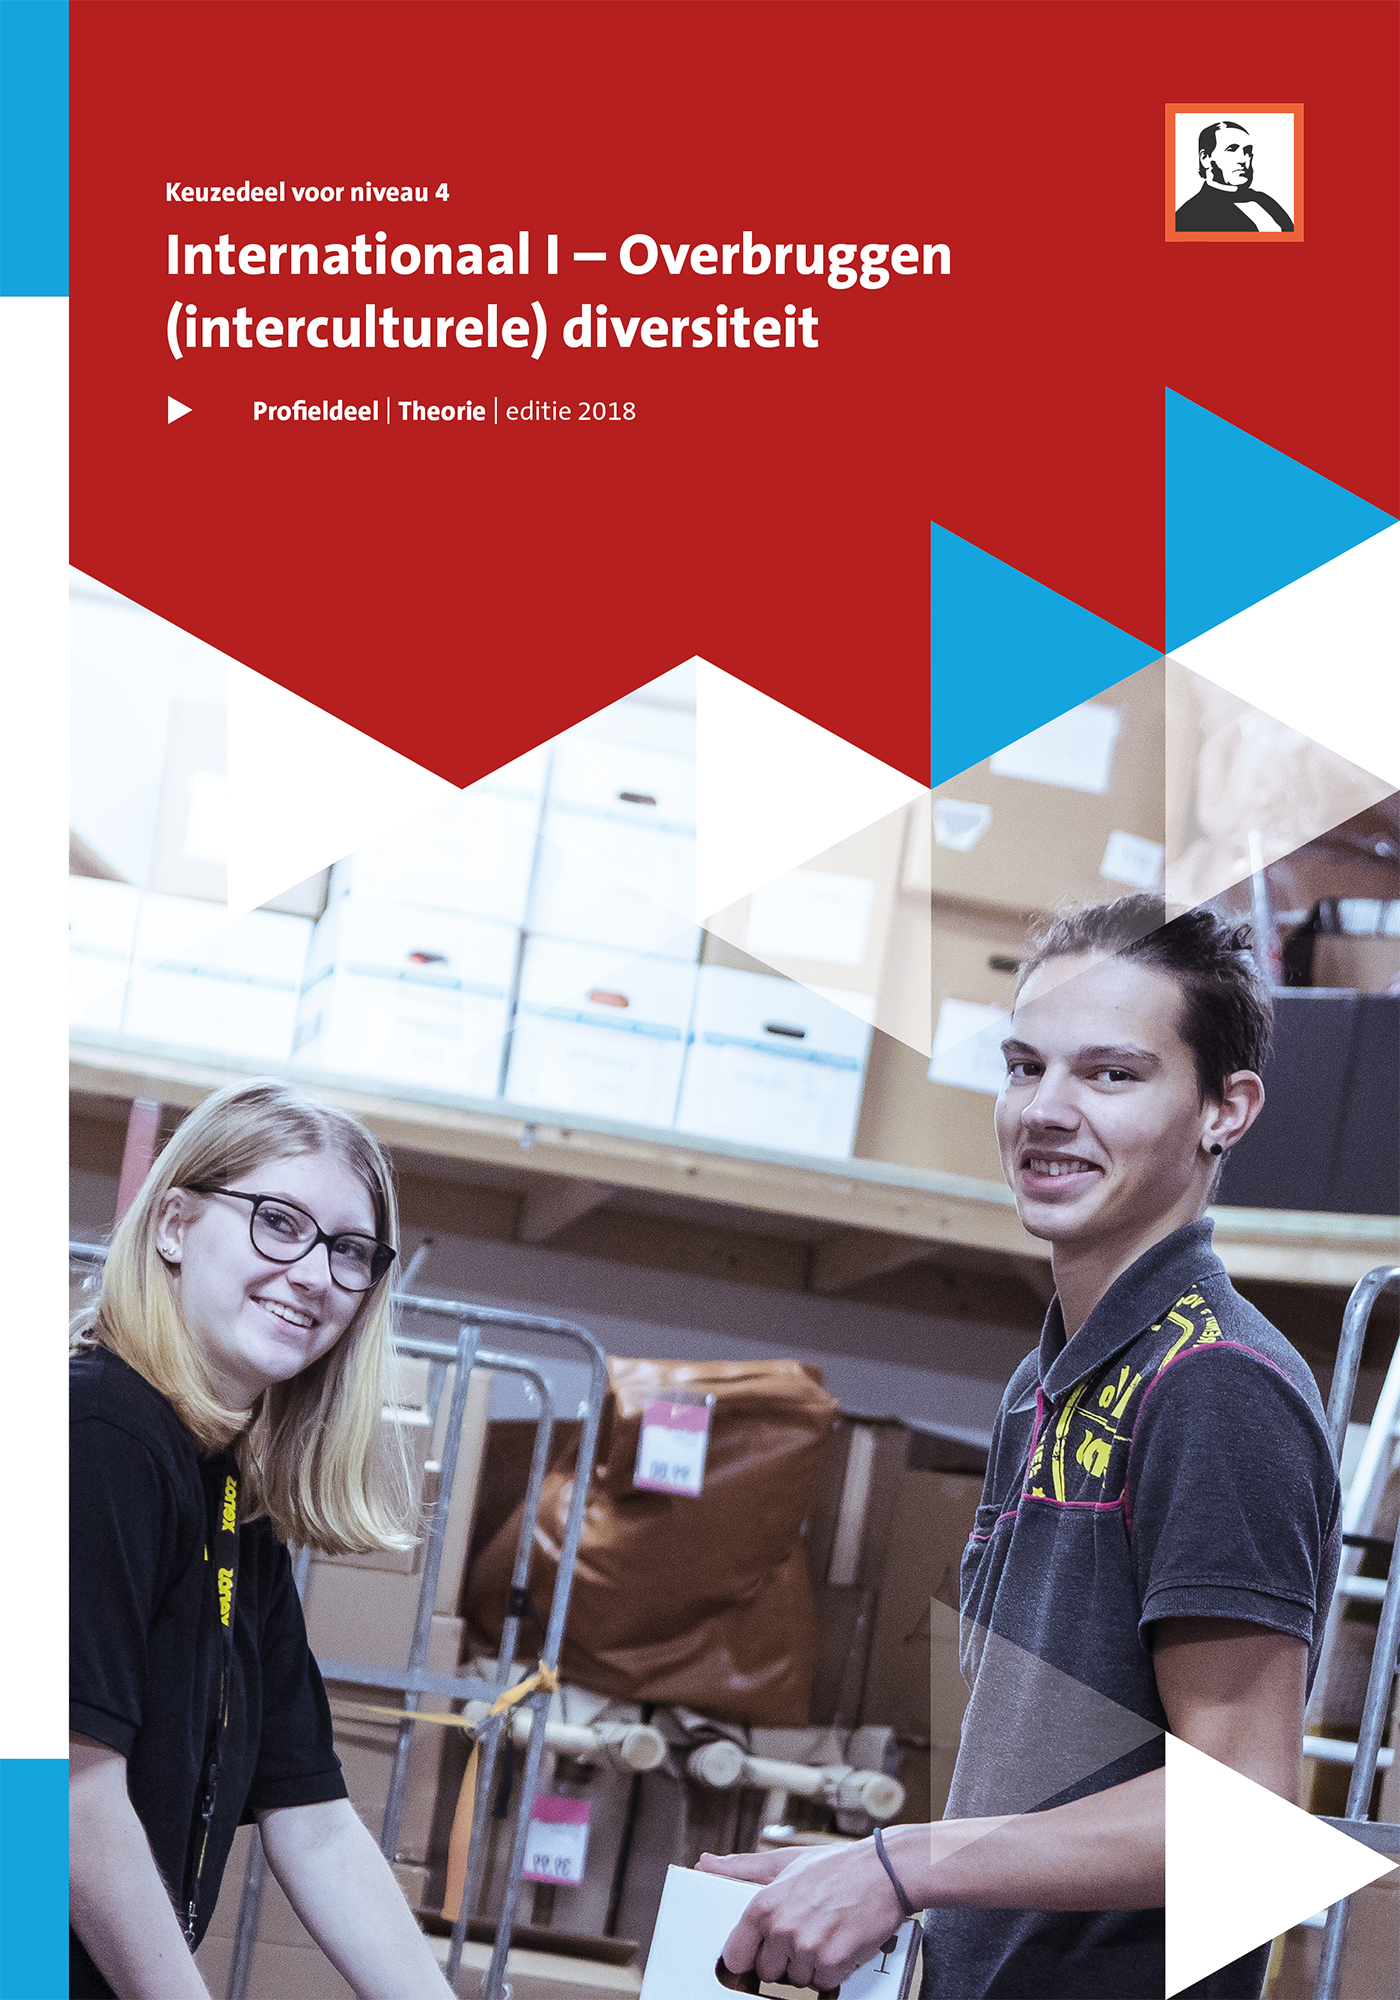 Afbeelding van Internationaal I: Overbruggen (interculturele) diversiteit (niveau 4) (A4)